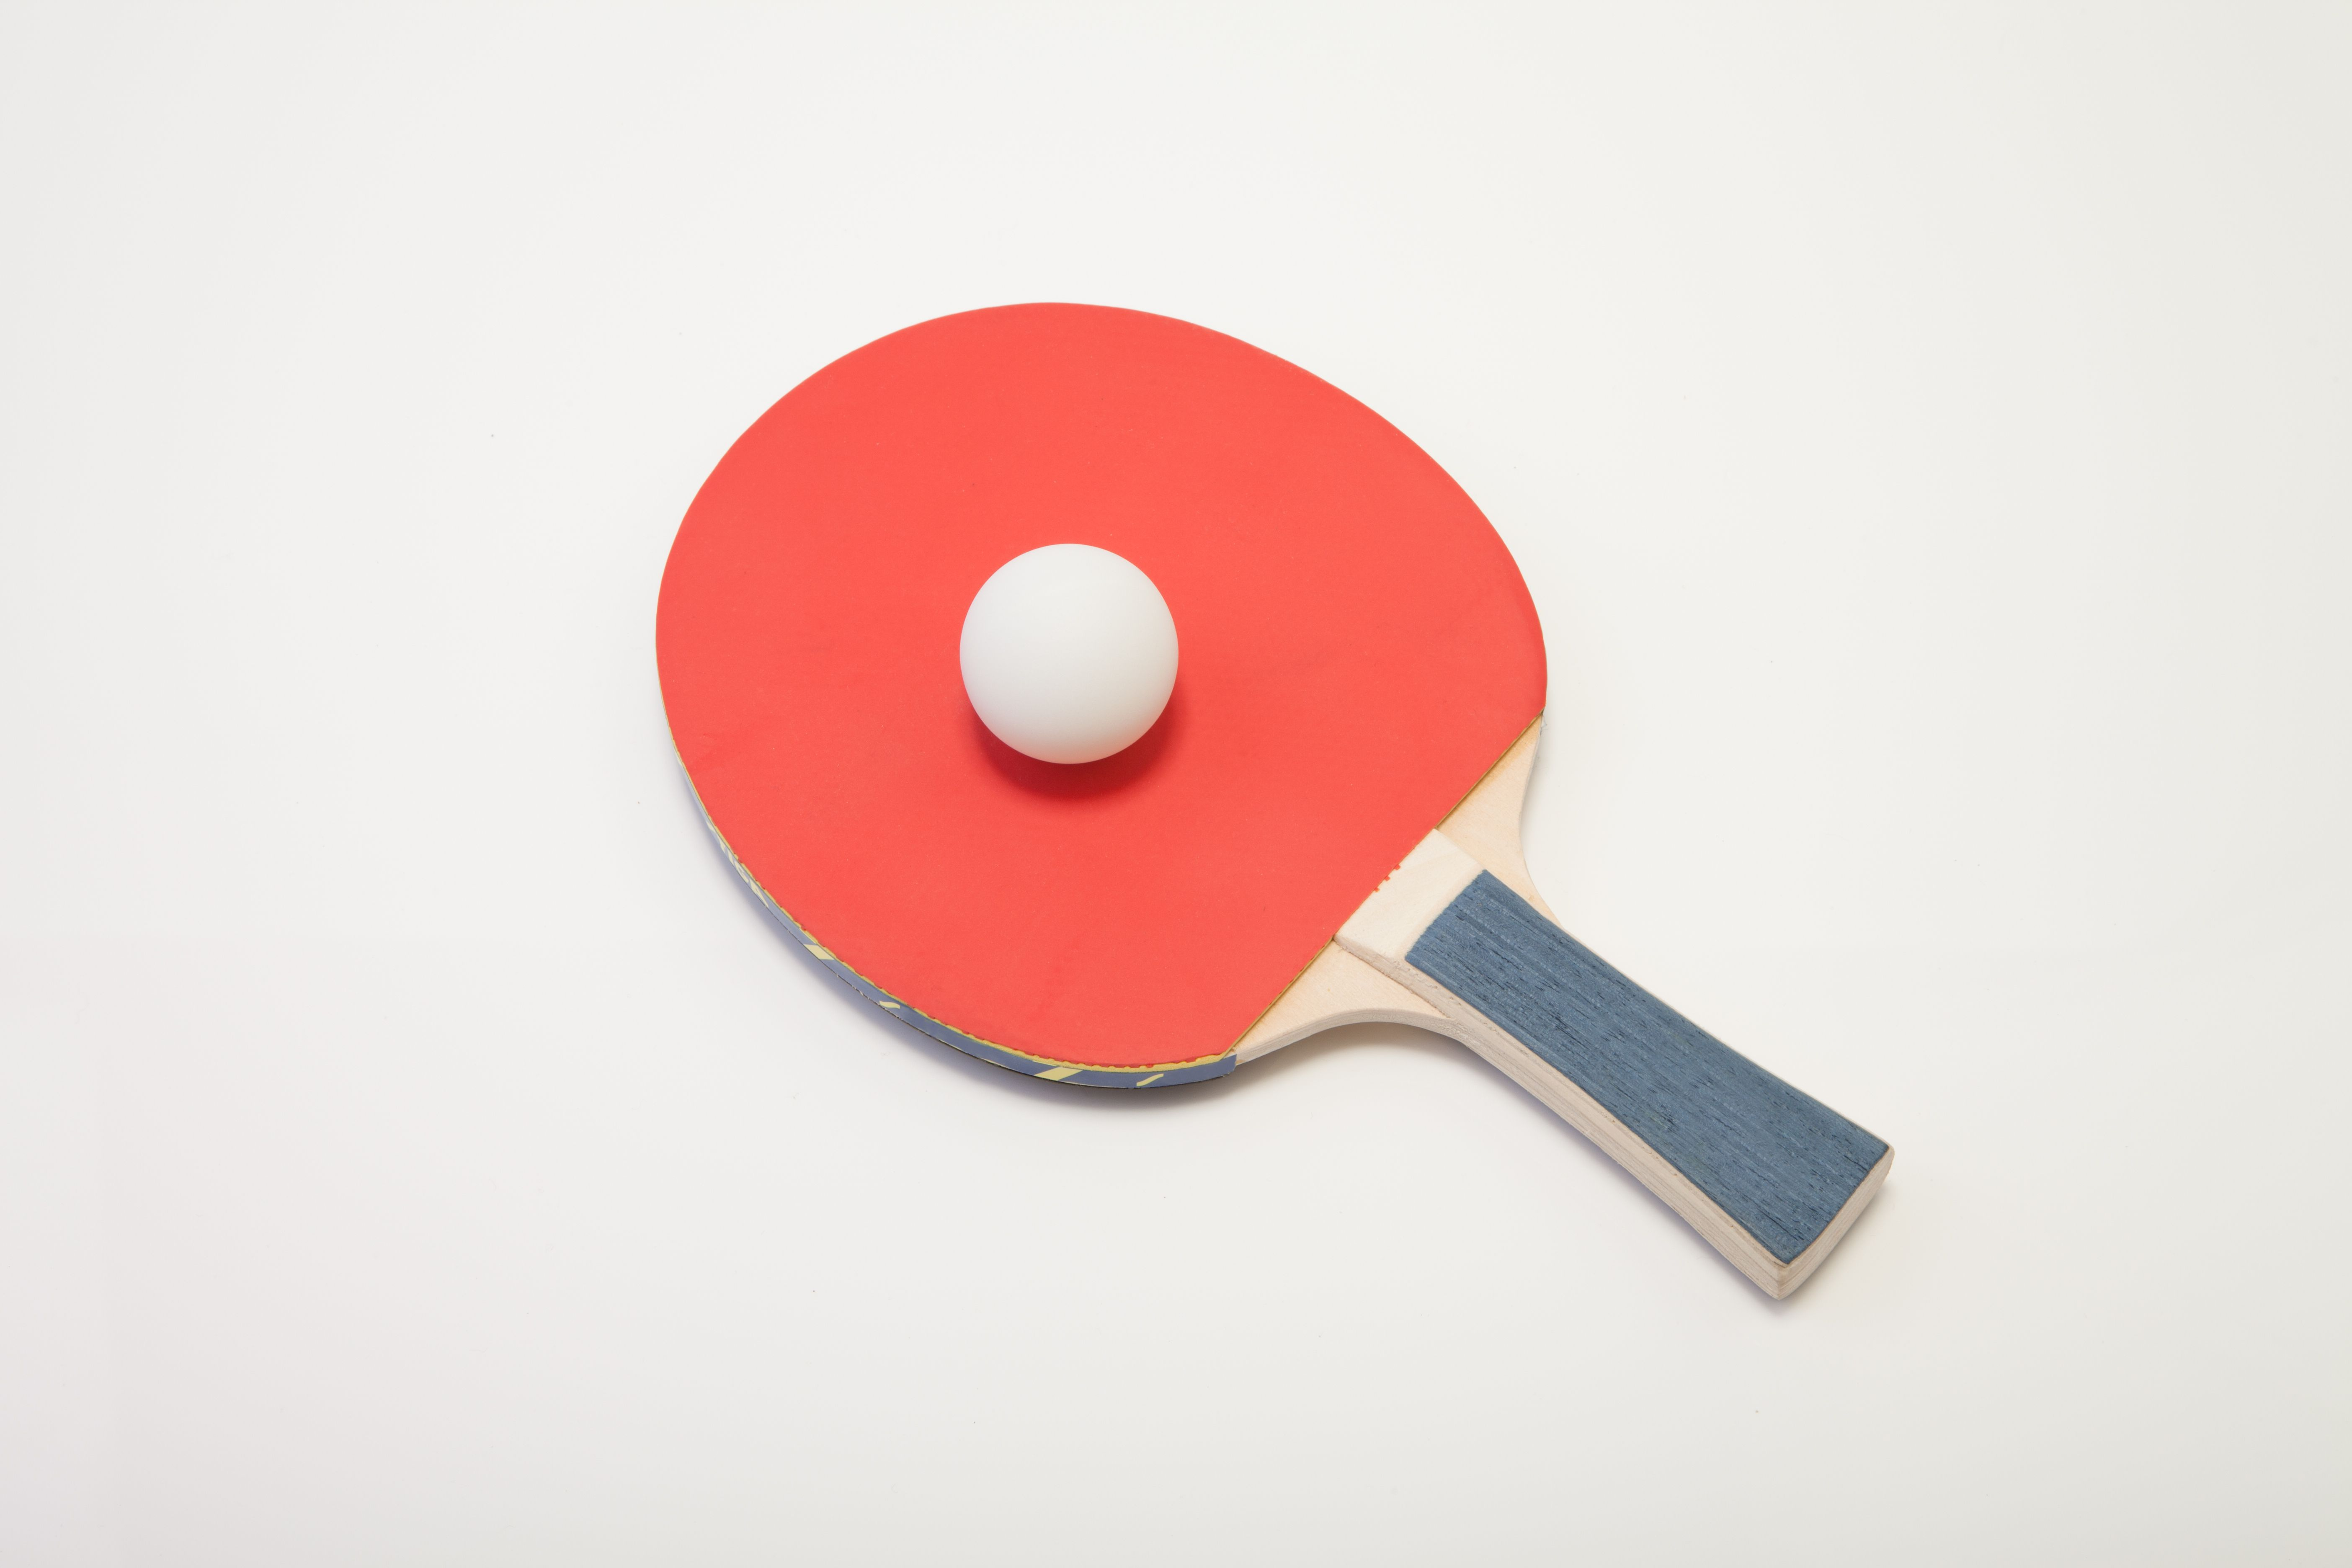 How to play table tennis with short pimples for 1 gross table tennis balls